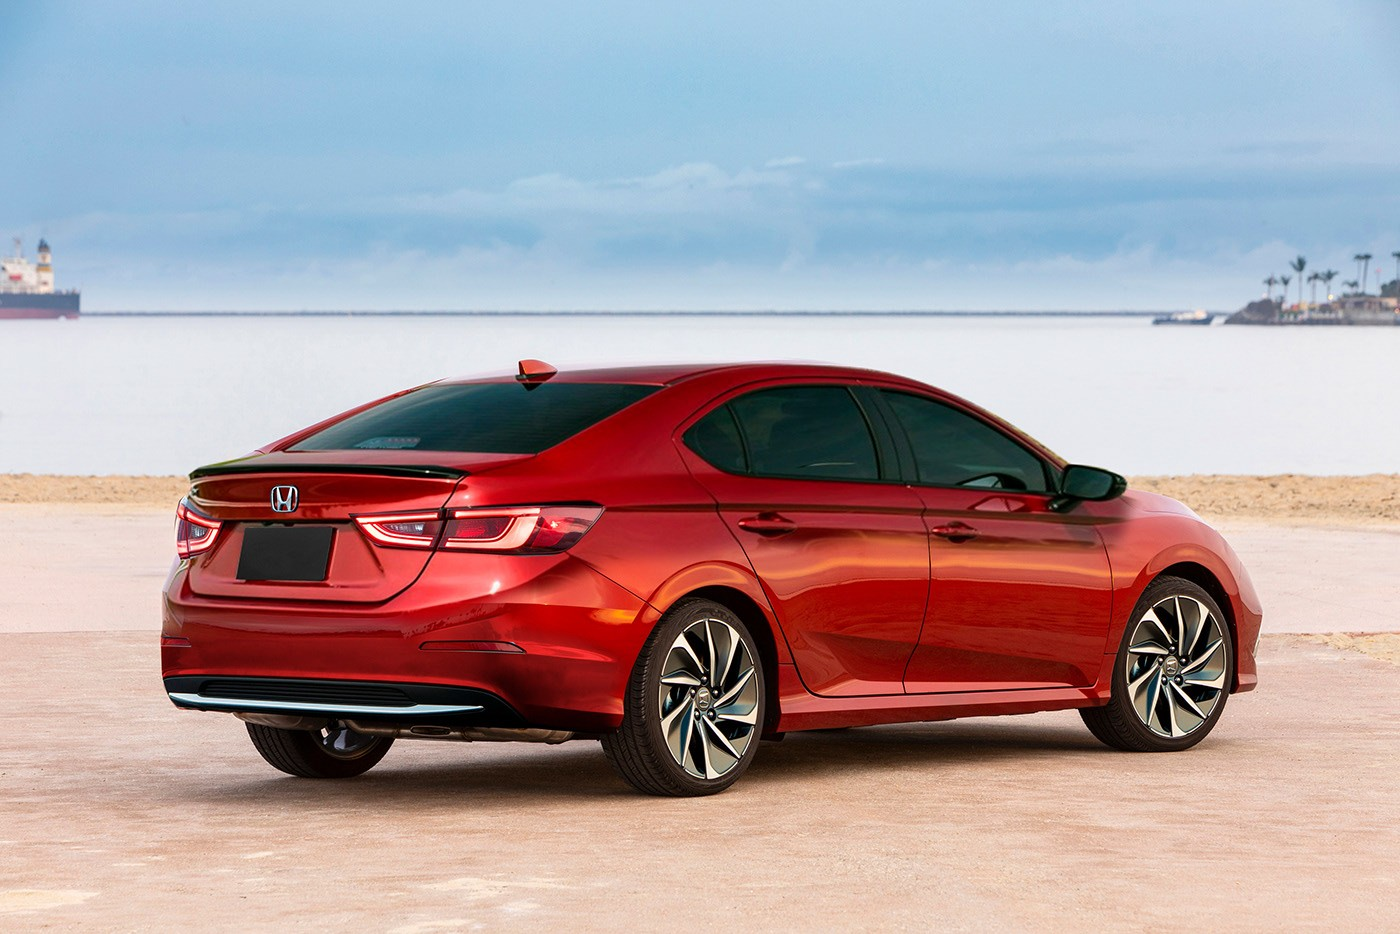 2021 - [Honda] Civic USA / Asie 2022-honda-civic-rendered-with-insight-cues-11th-generation-coming-spring-2021_2